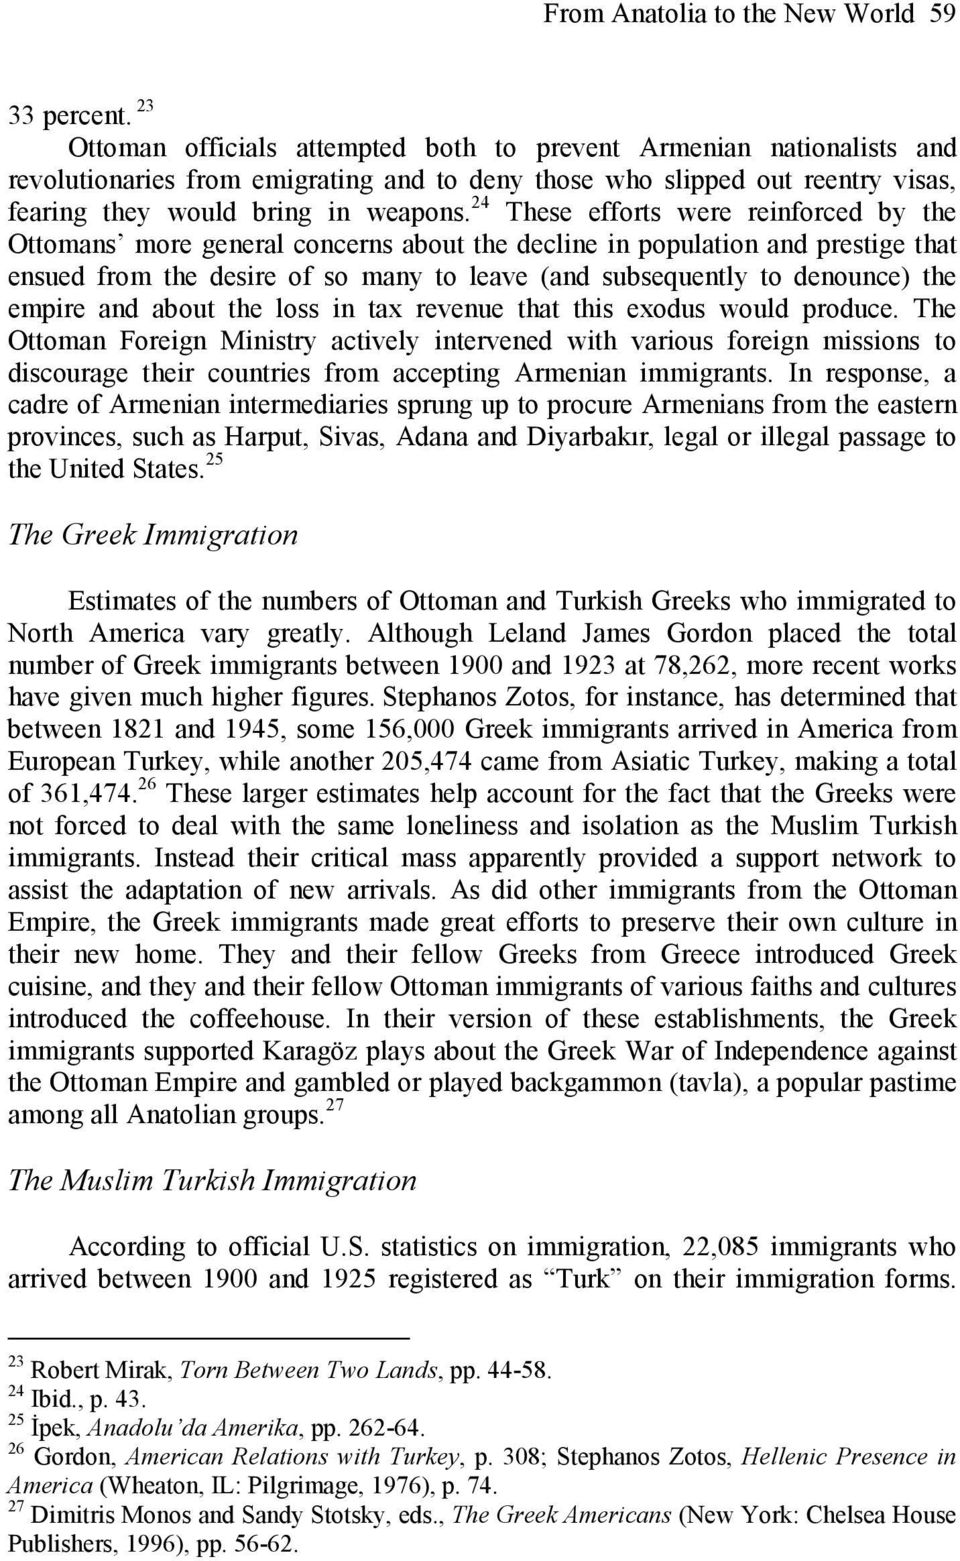 24 These efforts were reinforced by the Ottomans more general concerns about the decline in population and prestige that ensued from the desire of so many to leave (and subsequently to denounce) the